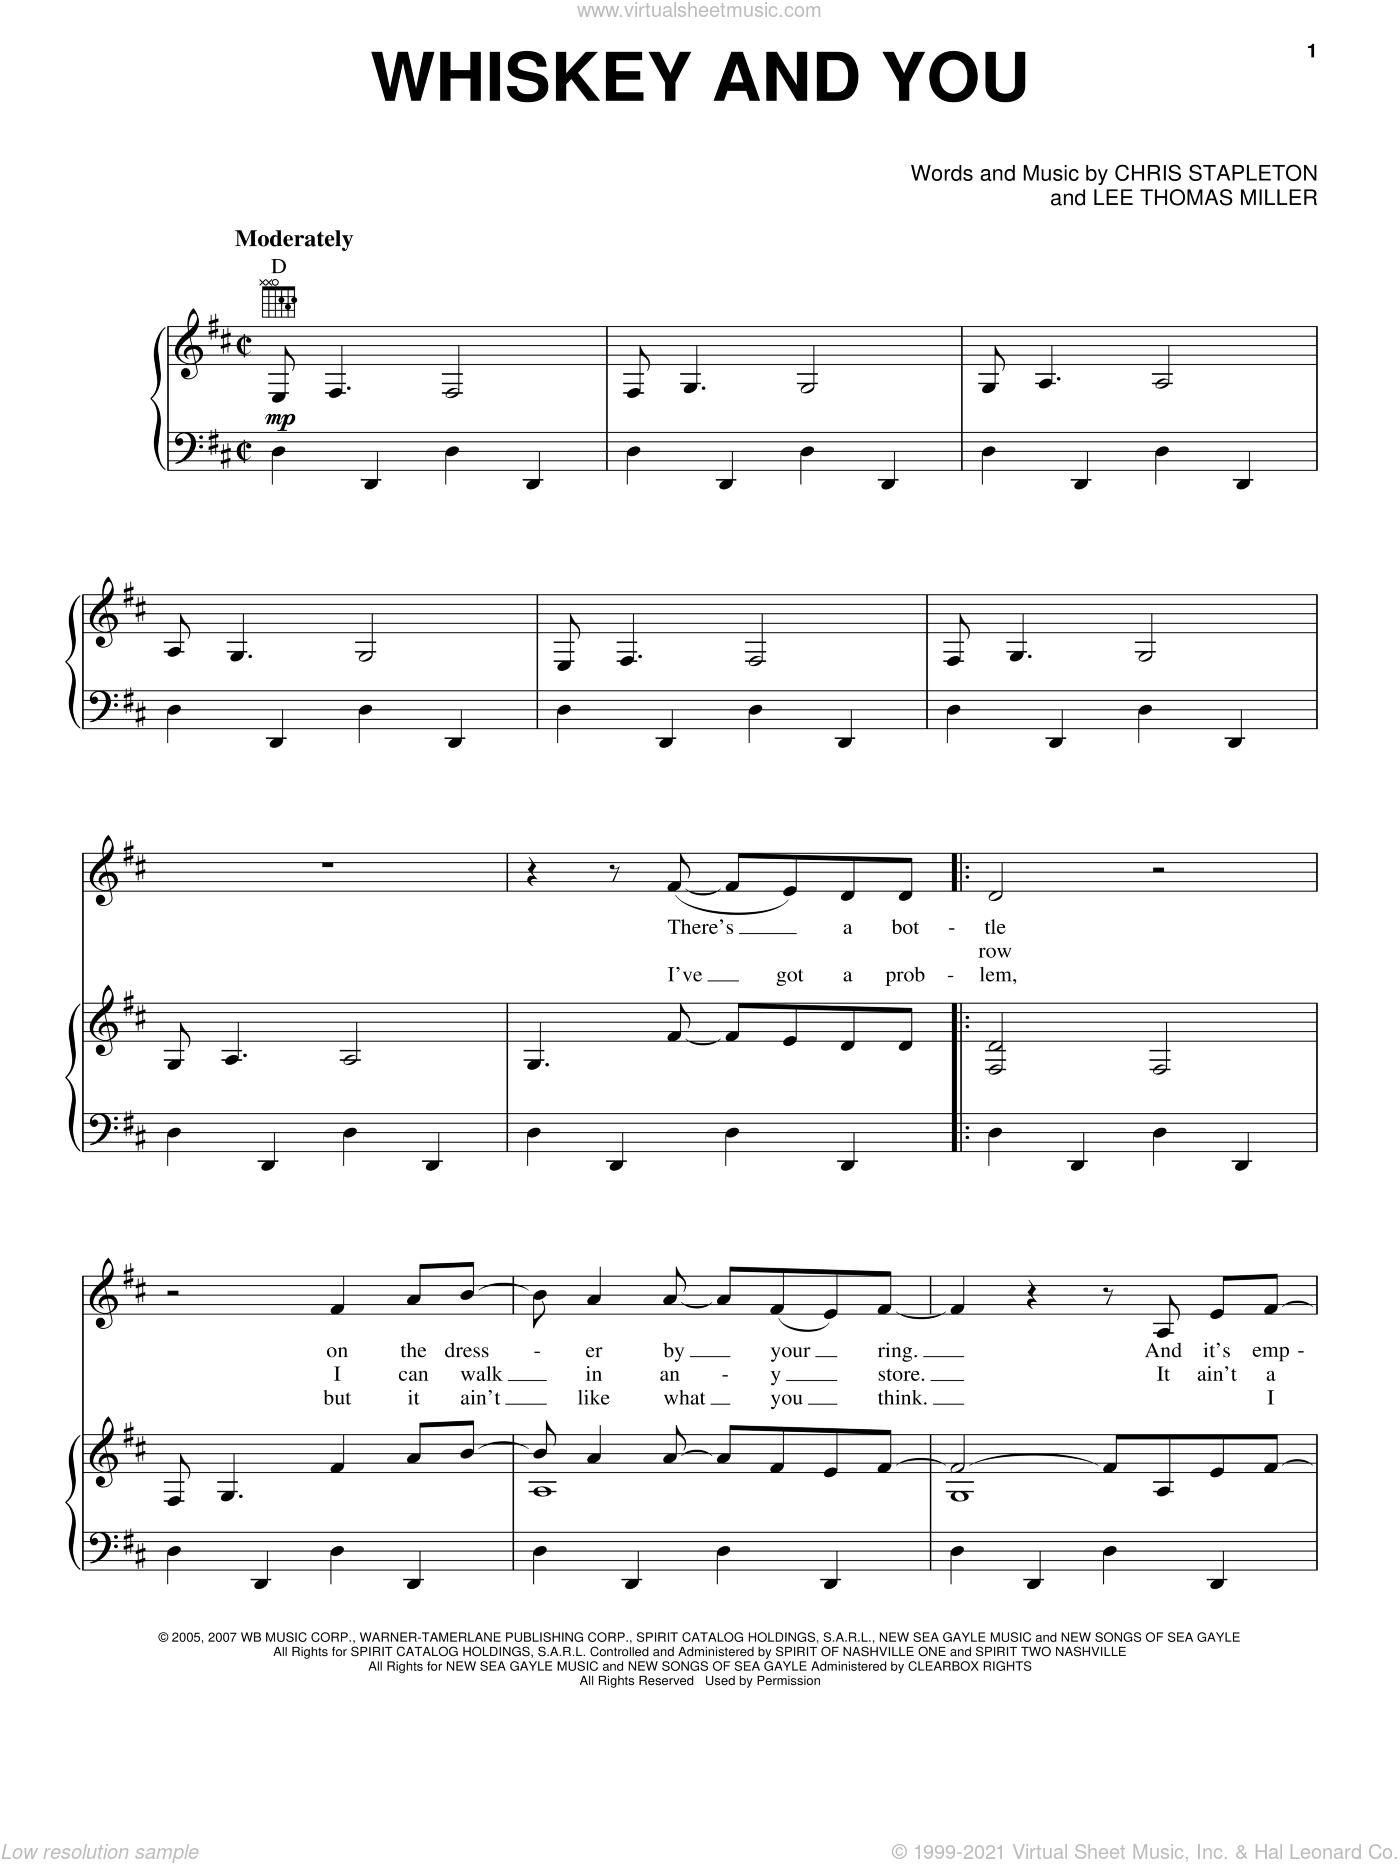 Whiskey And You sheet music for voice, piano or guitar by Chris Stapleton, Tim McGraw and Lee Thomas Miller, intermediate voice, piano or guitar. Score Image Preview.